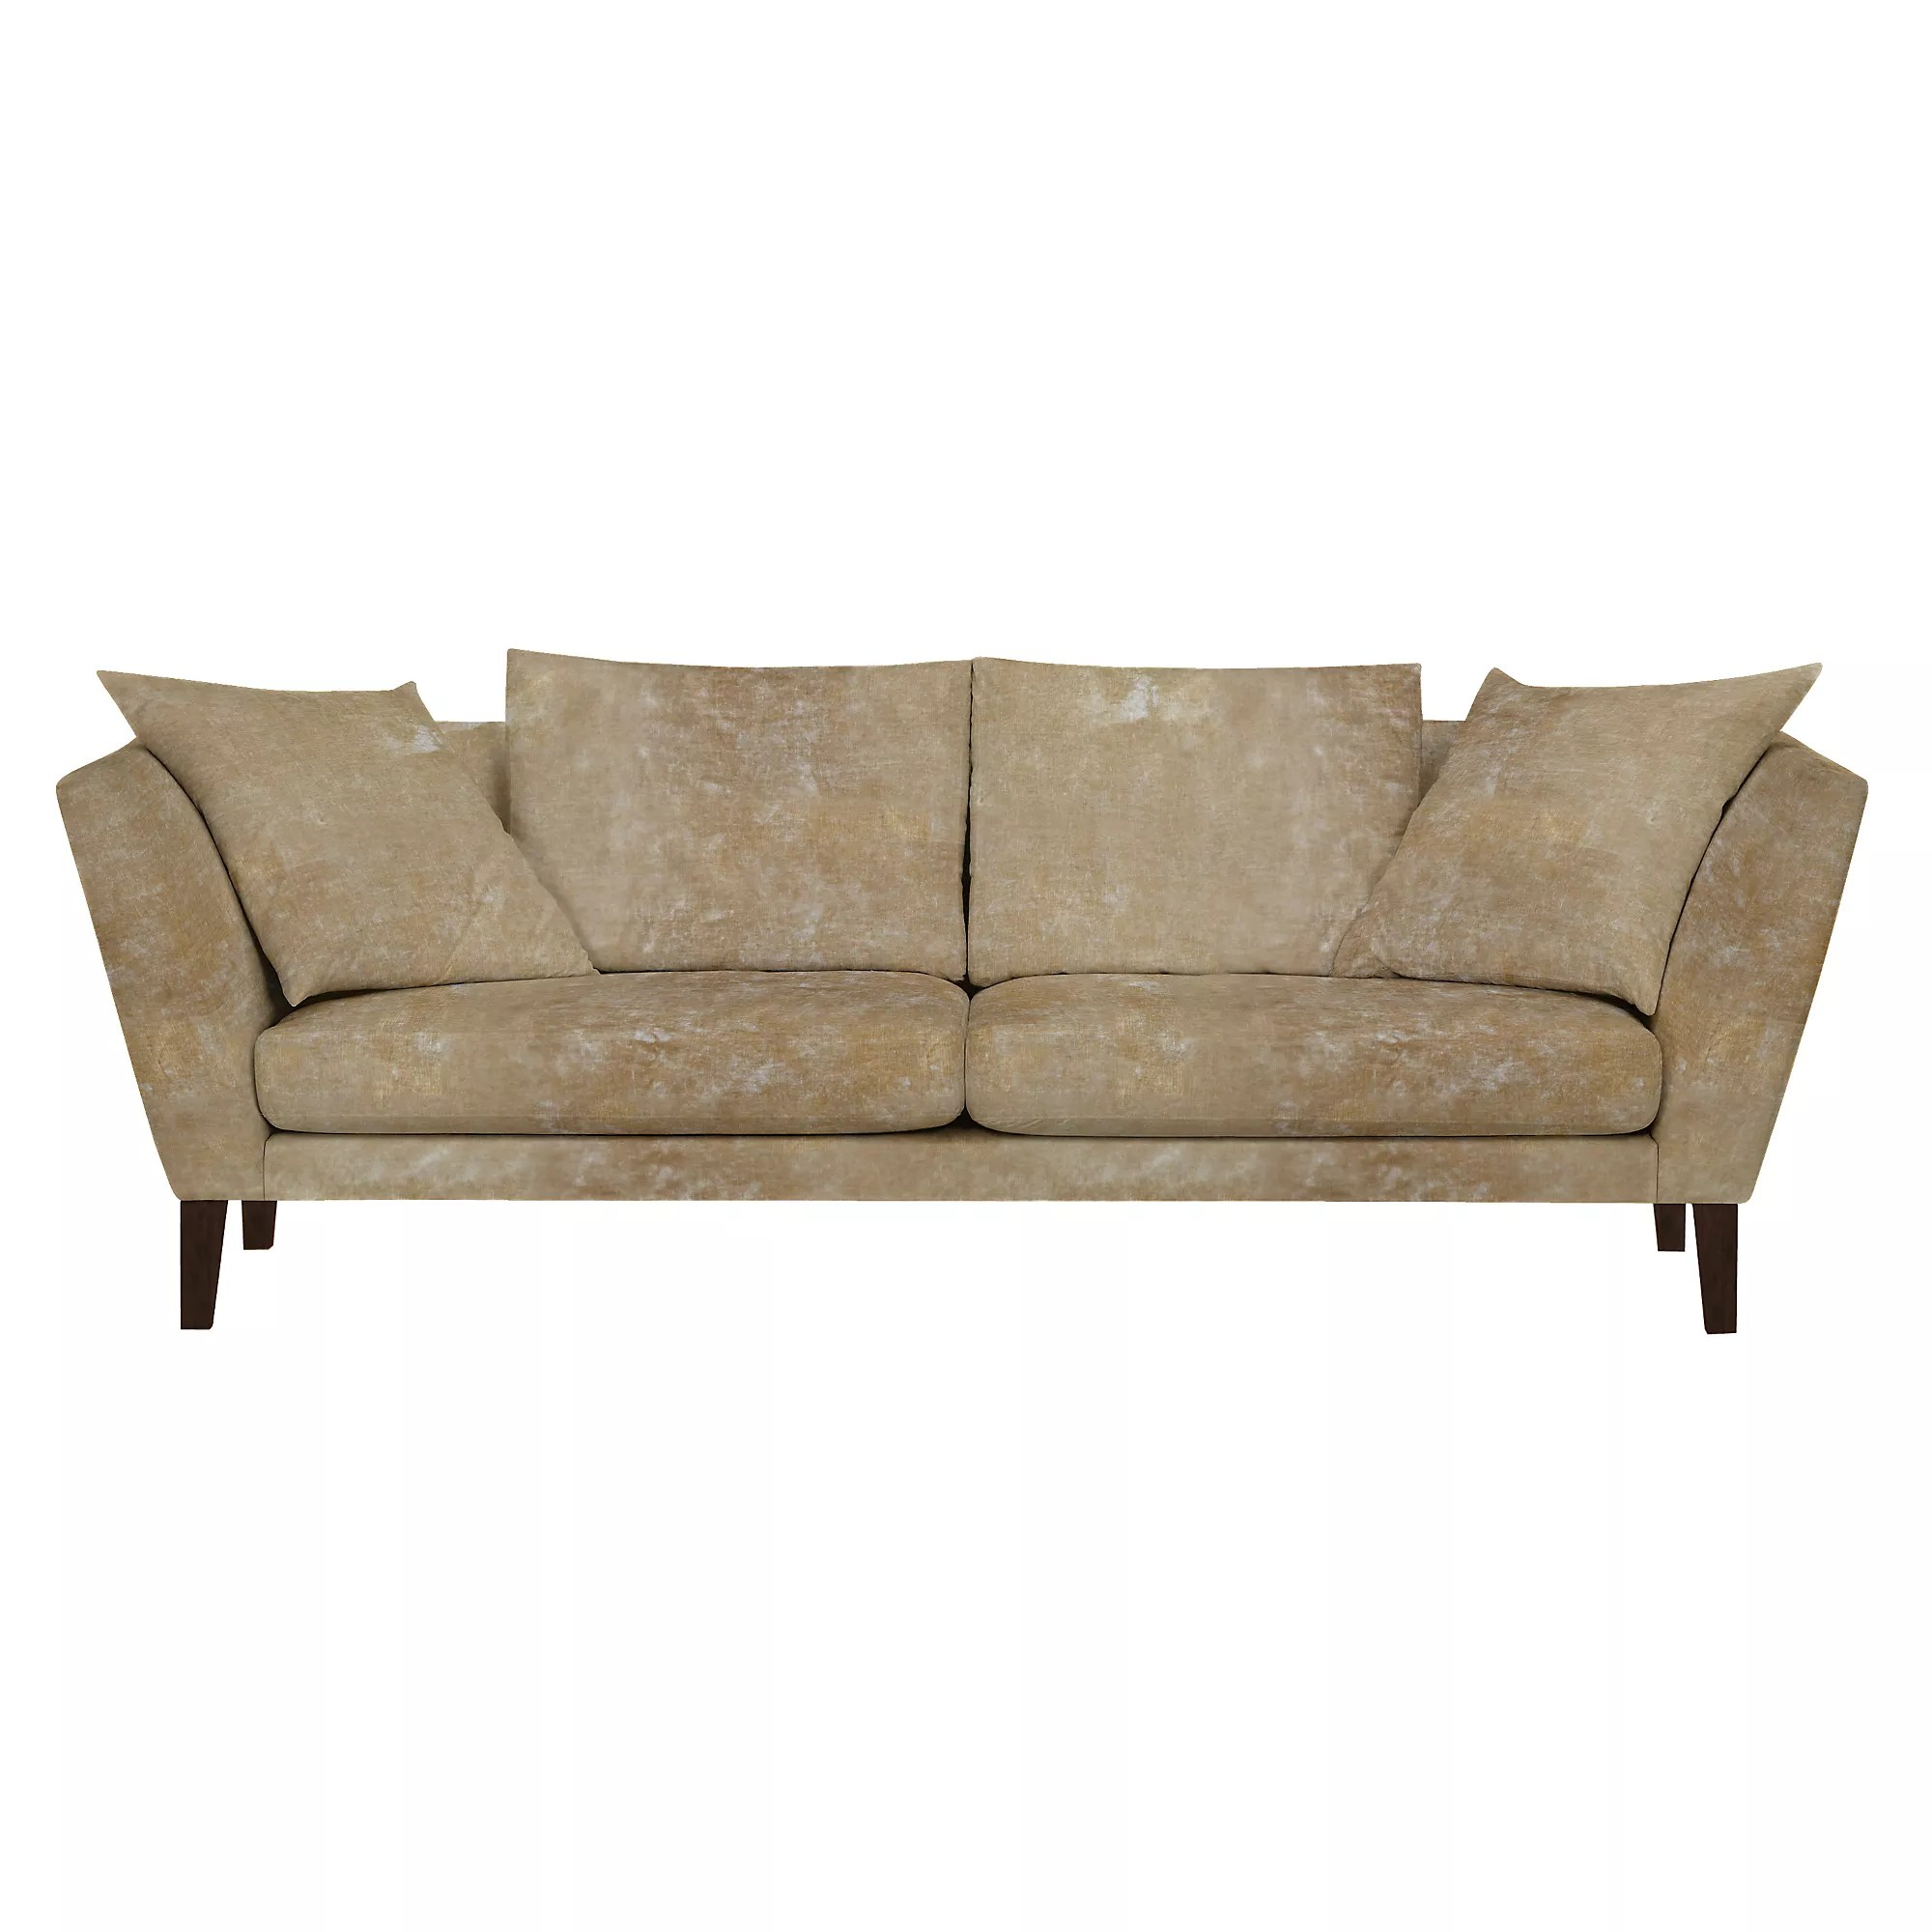 regency sofa john lewis taylor king reviews grand como putty at partners buyjohn online johnlewis com